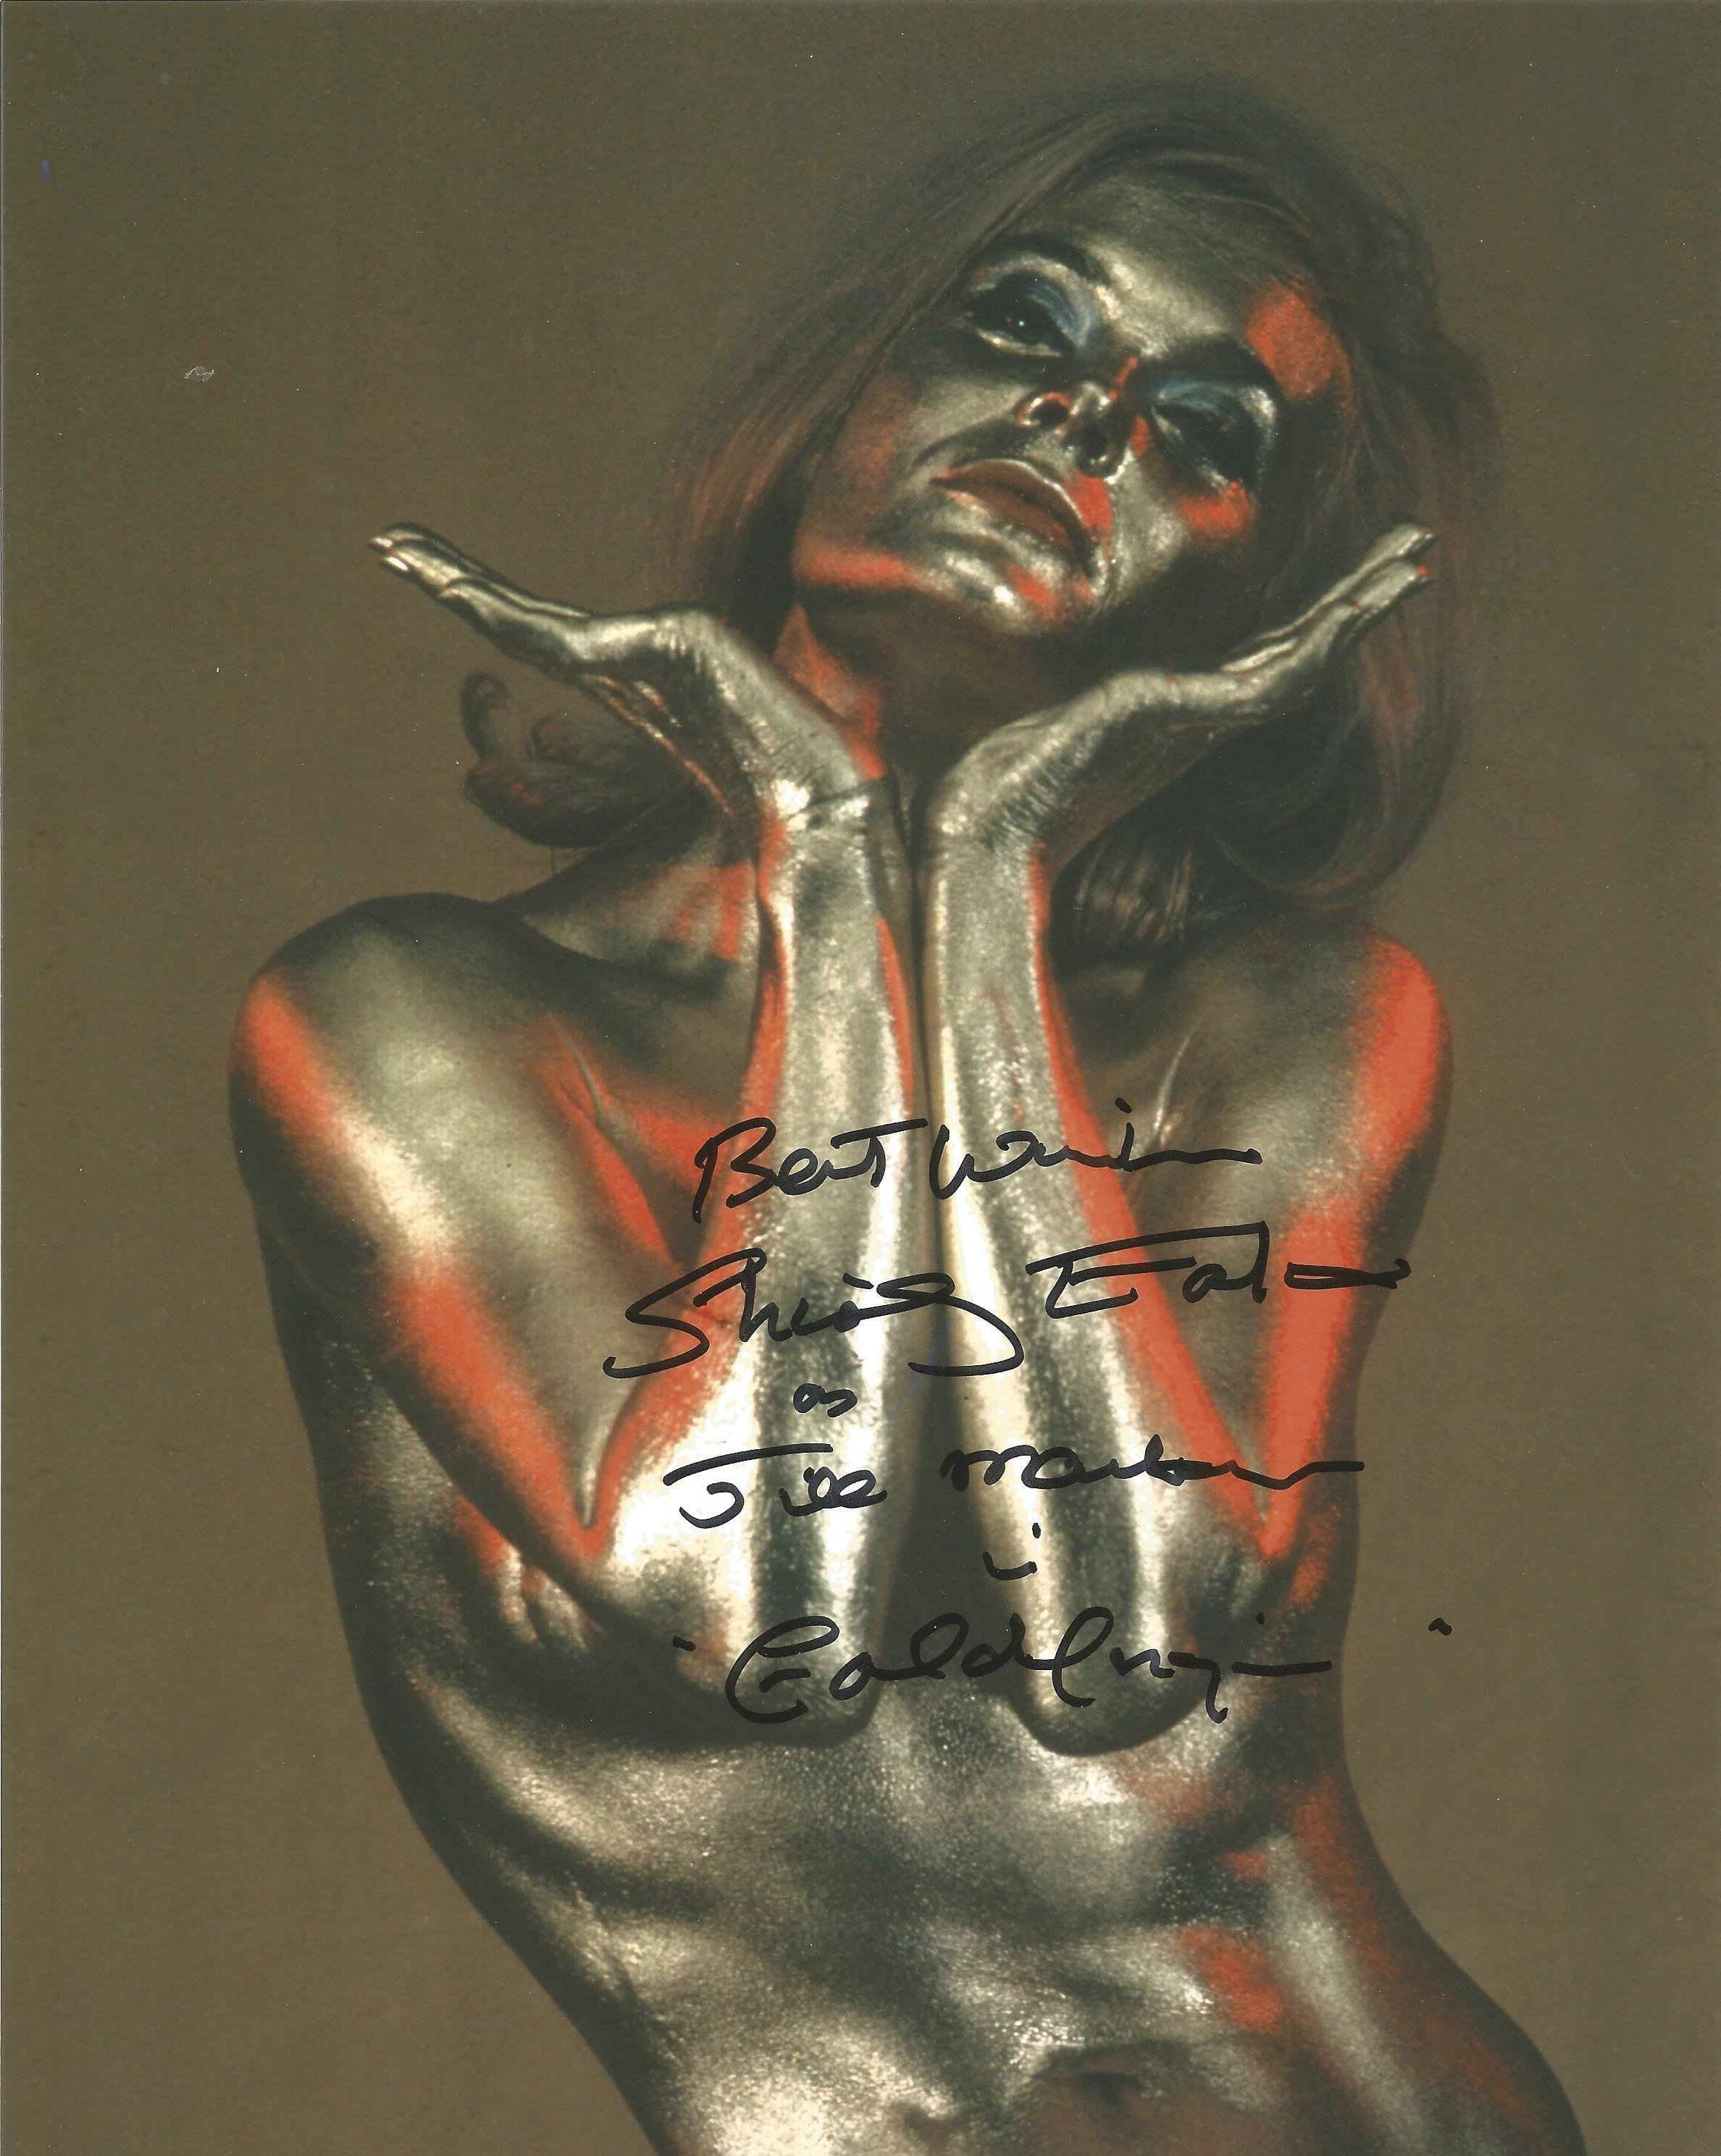 Shirley Eaton signed 10x8 black and white photograph pictured during her role as iconic Bond Girl.